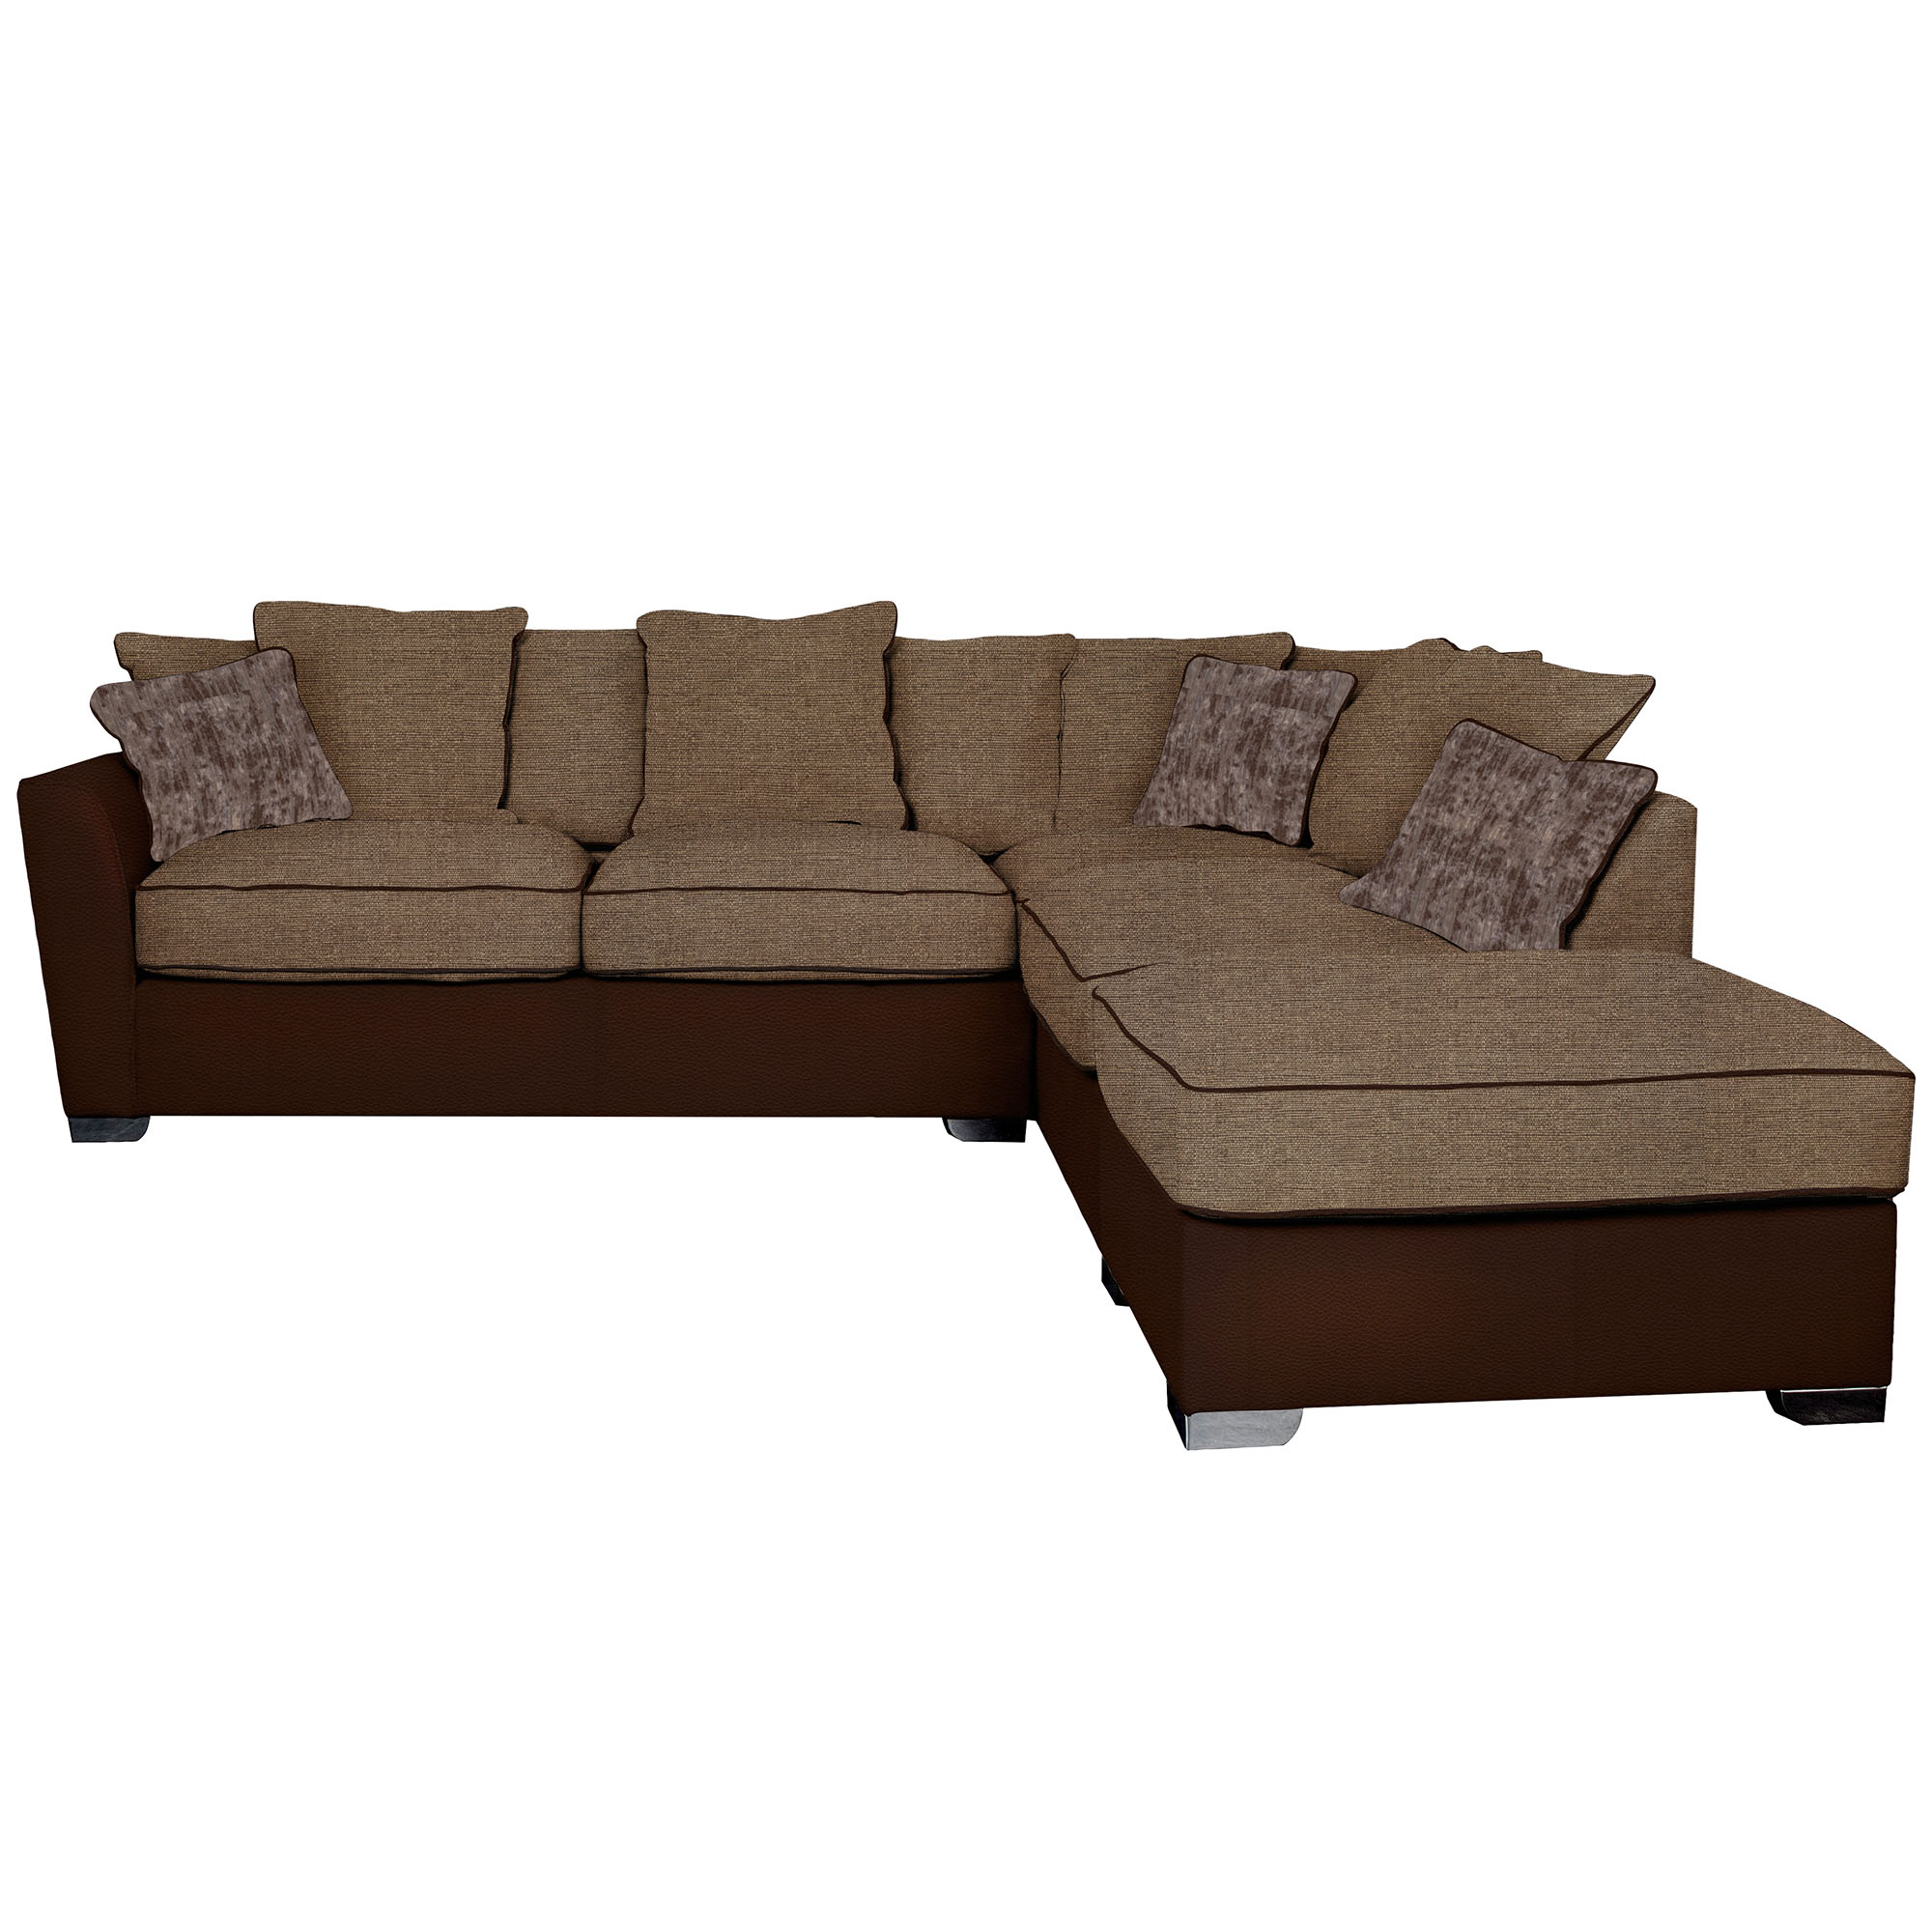 Right Hand Performance And Fabric Corner Sofa Leather Fabric Mix Brown